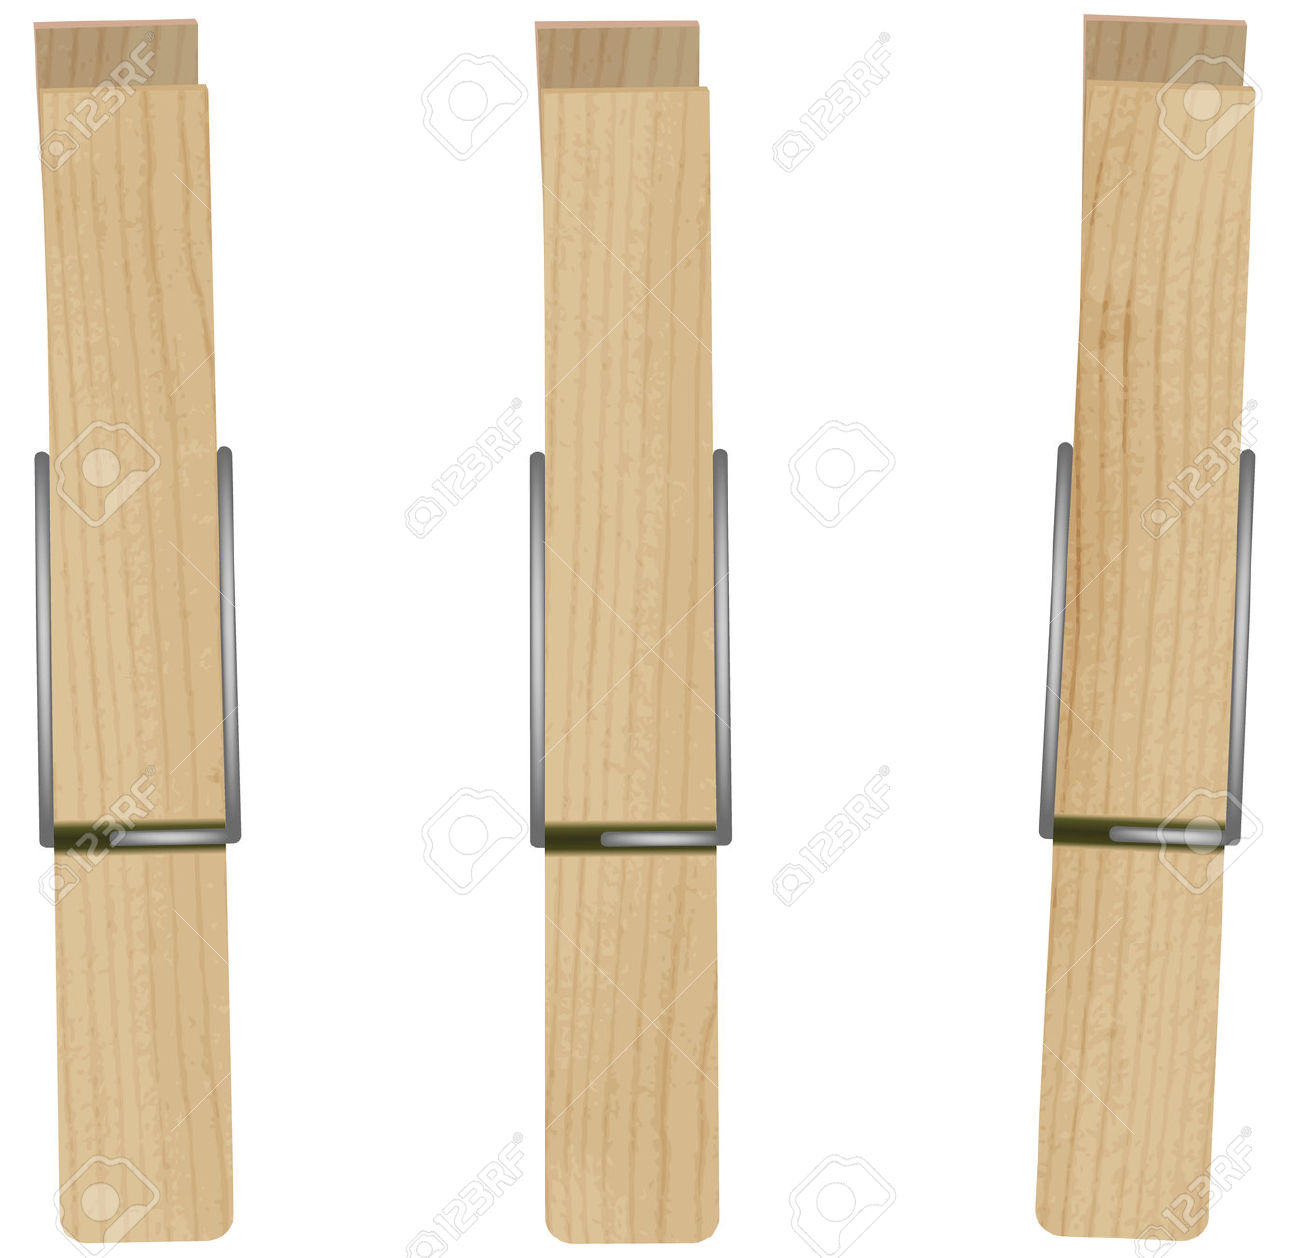 Wooden Pegs Clipart Clipground